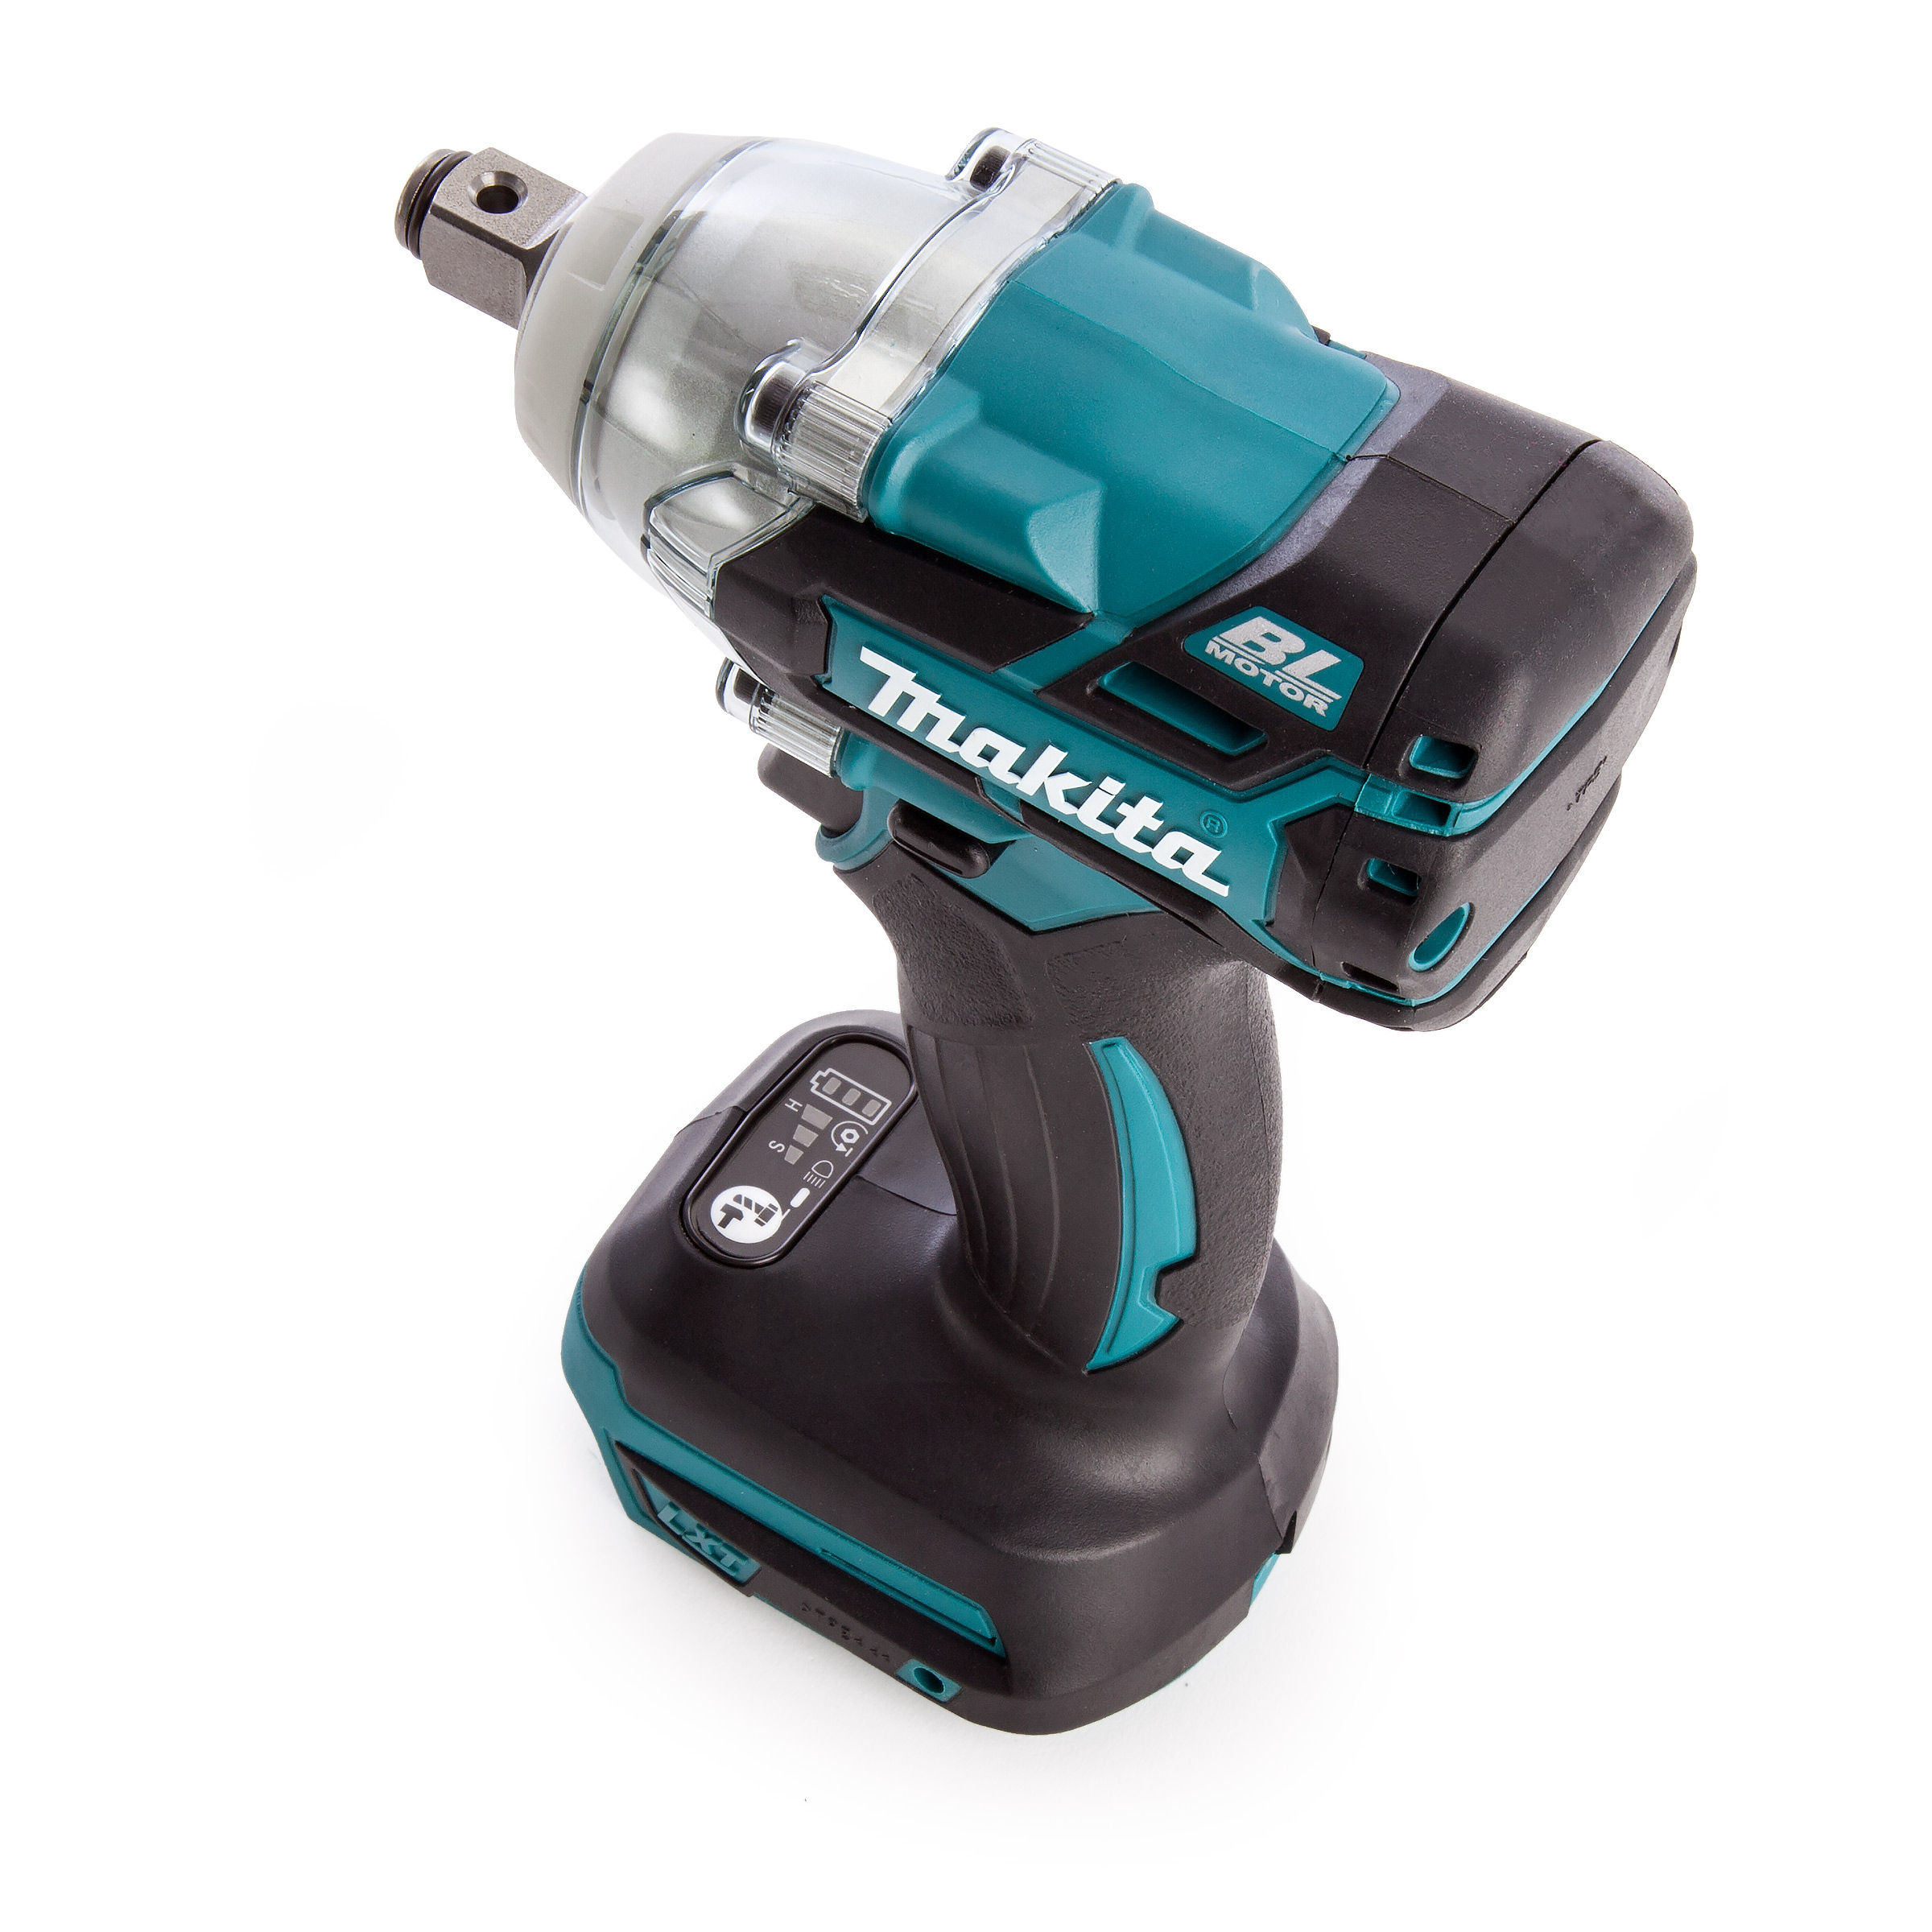 Makita DTW285Z 18V Cordless Brushless li-ion Impact Wrench (Body Only)